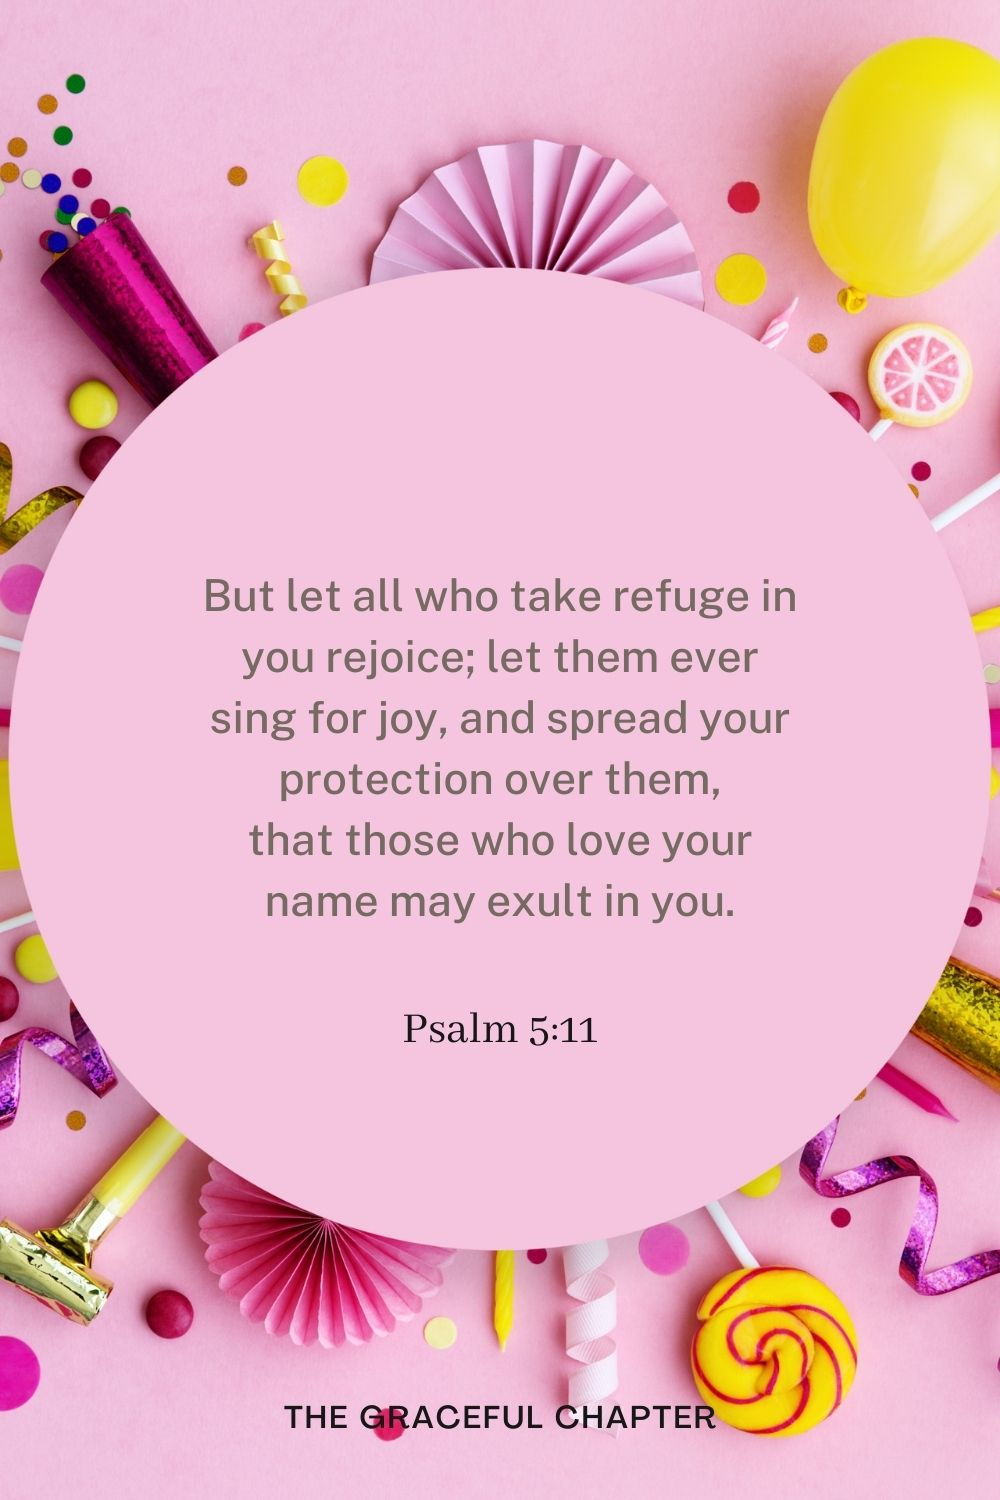 But let all who take refuge in you rejoice; let them ever sing for joy, and spread your protection over them, that those who love your name may exult in you. Psalm 5:11